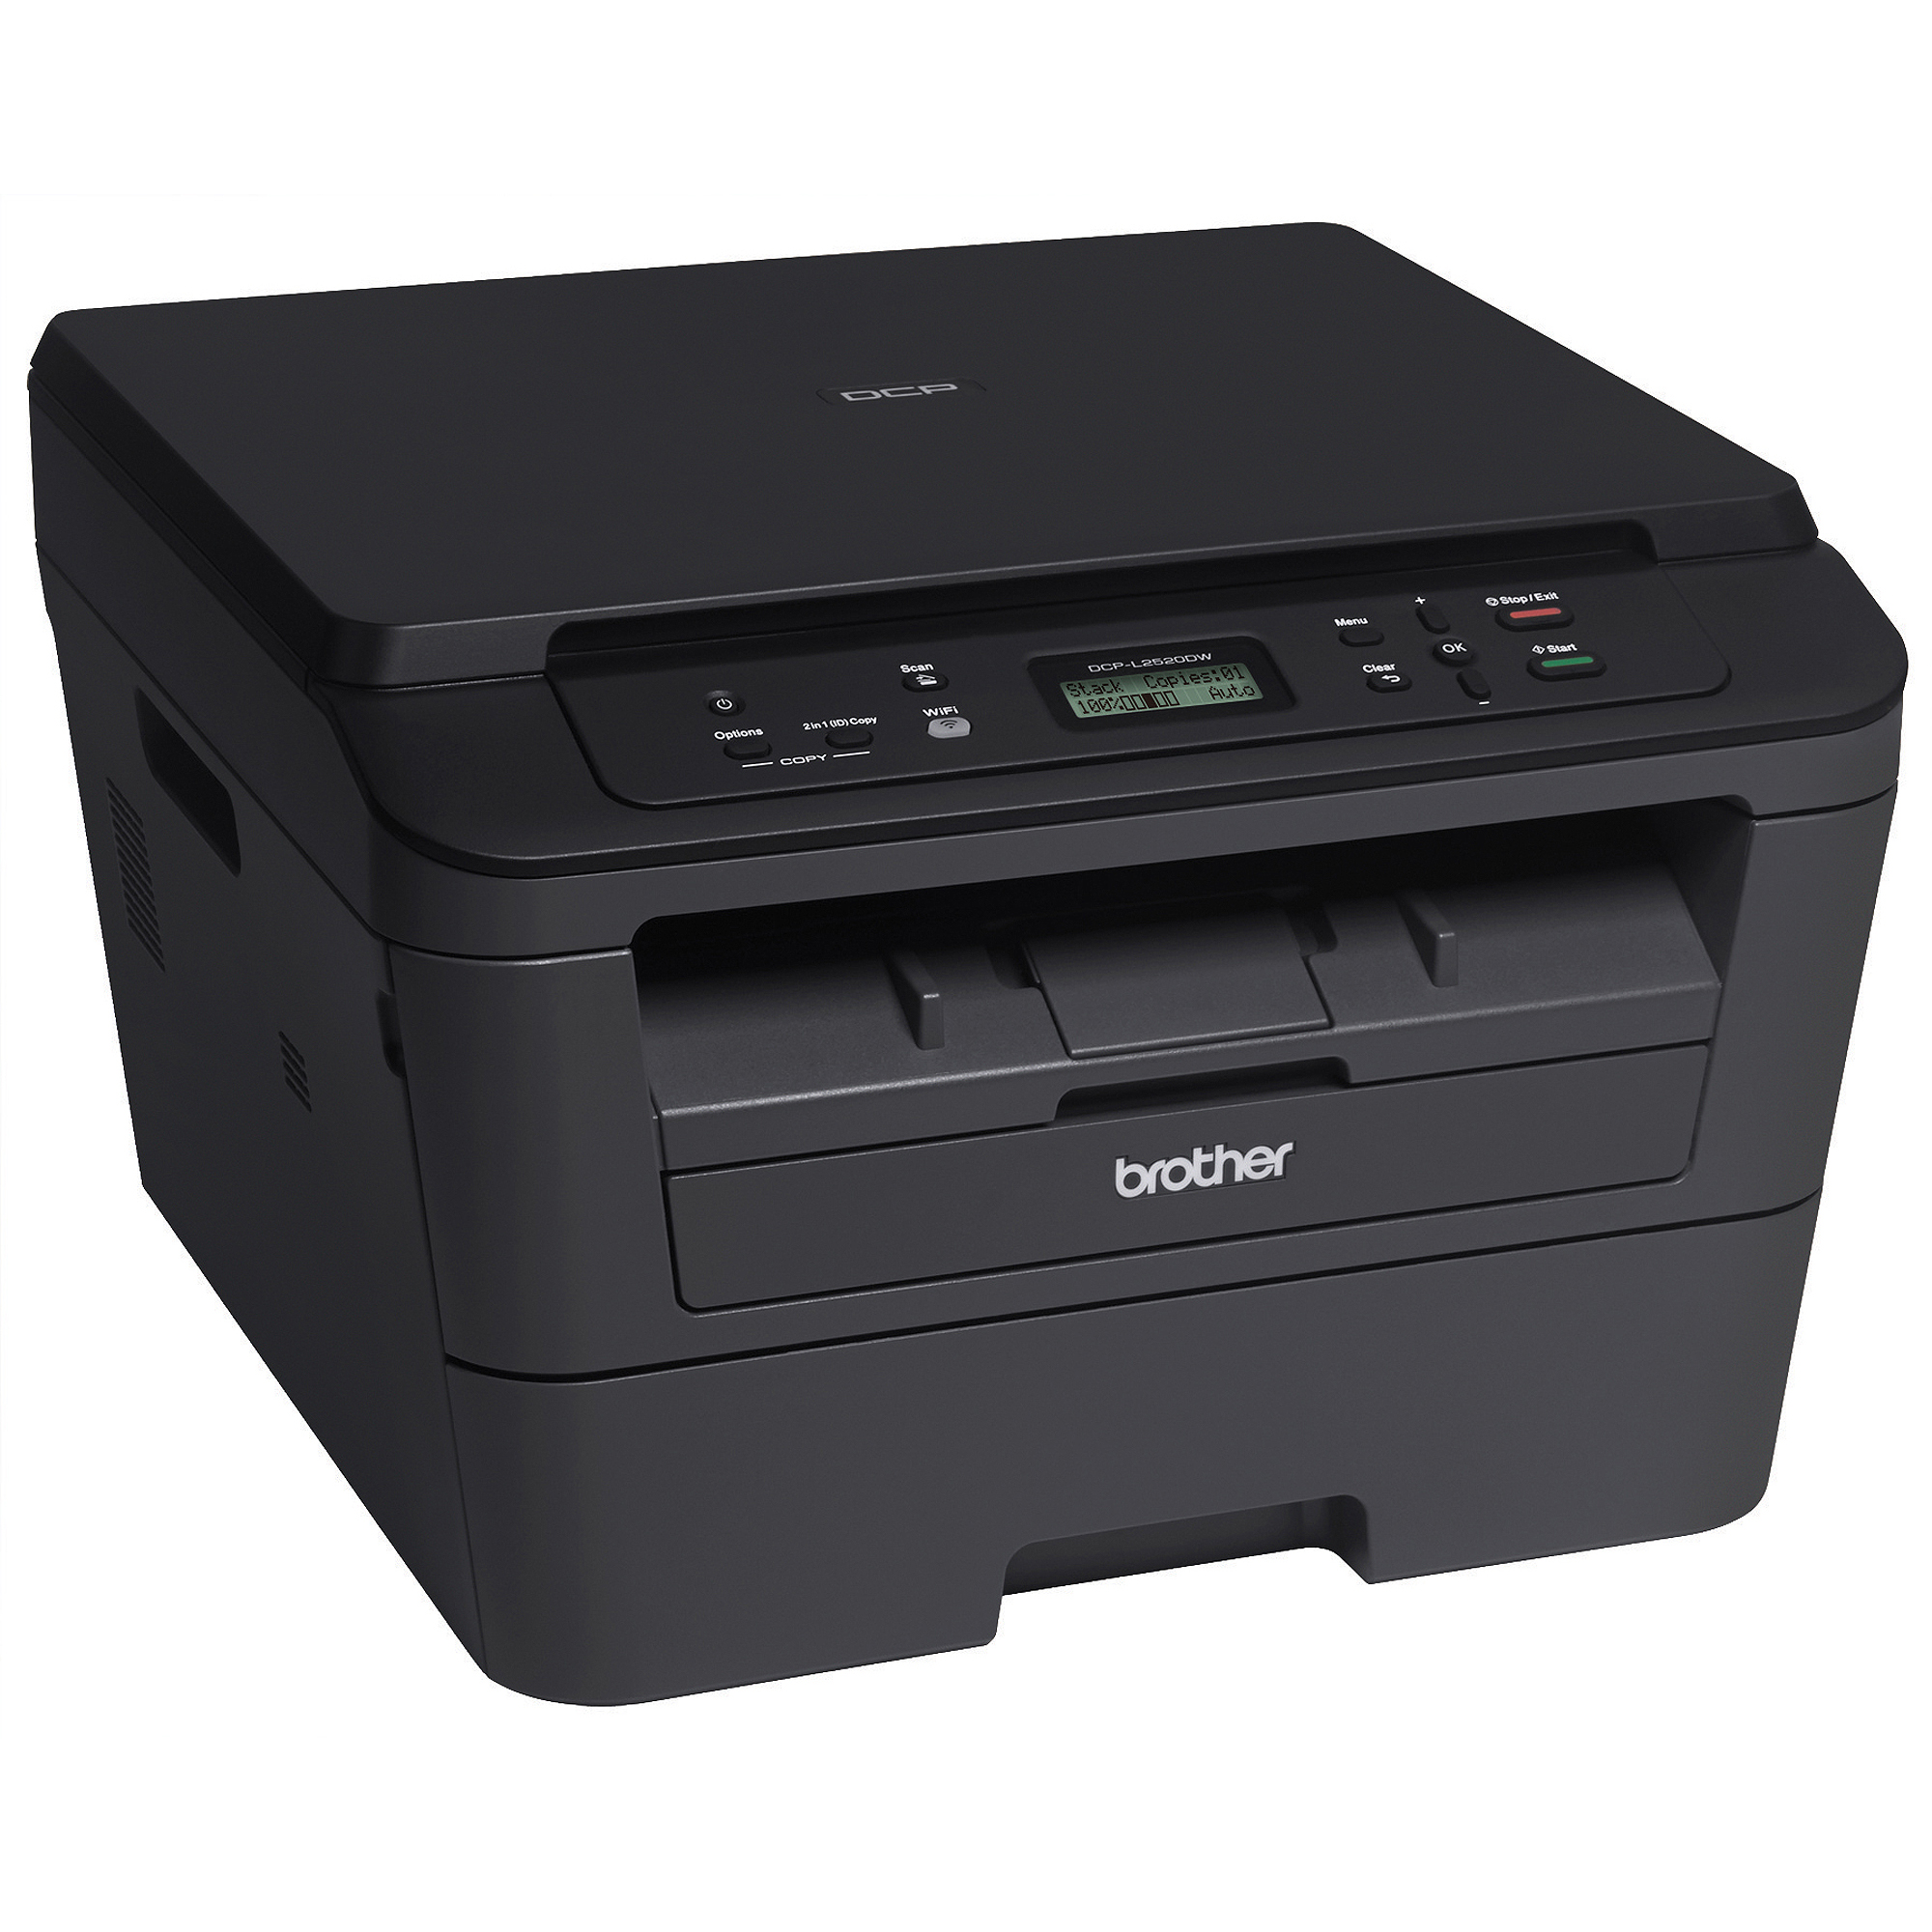 Brother DCP-L2520DW Laser Multi-Function Printer/Copier/Scanner